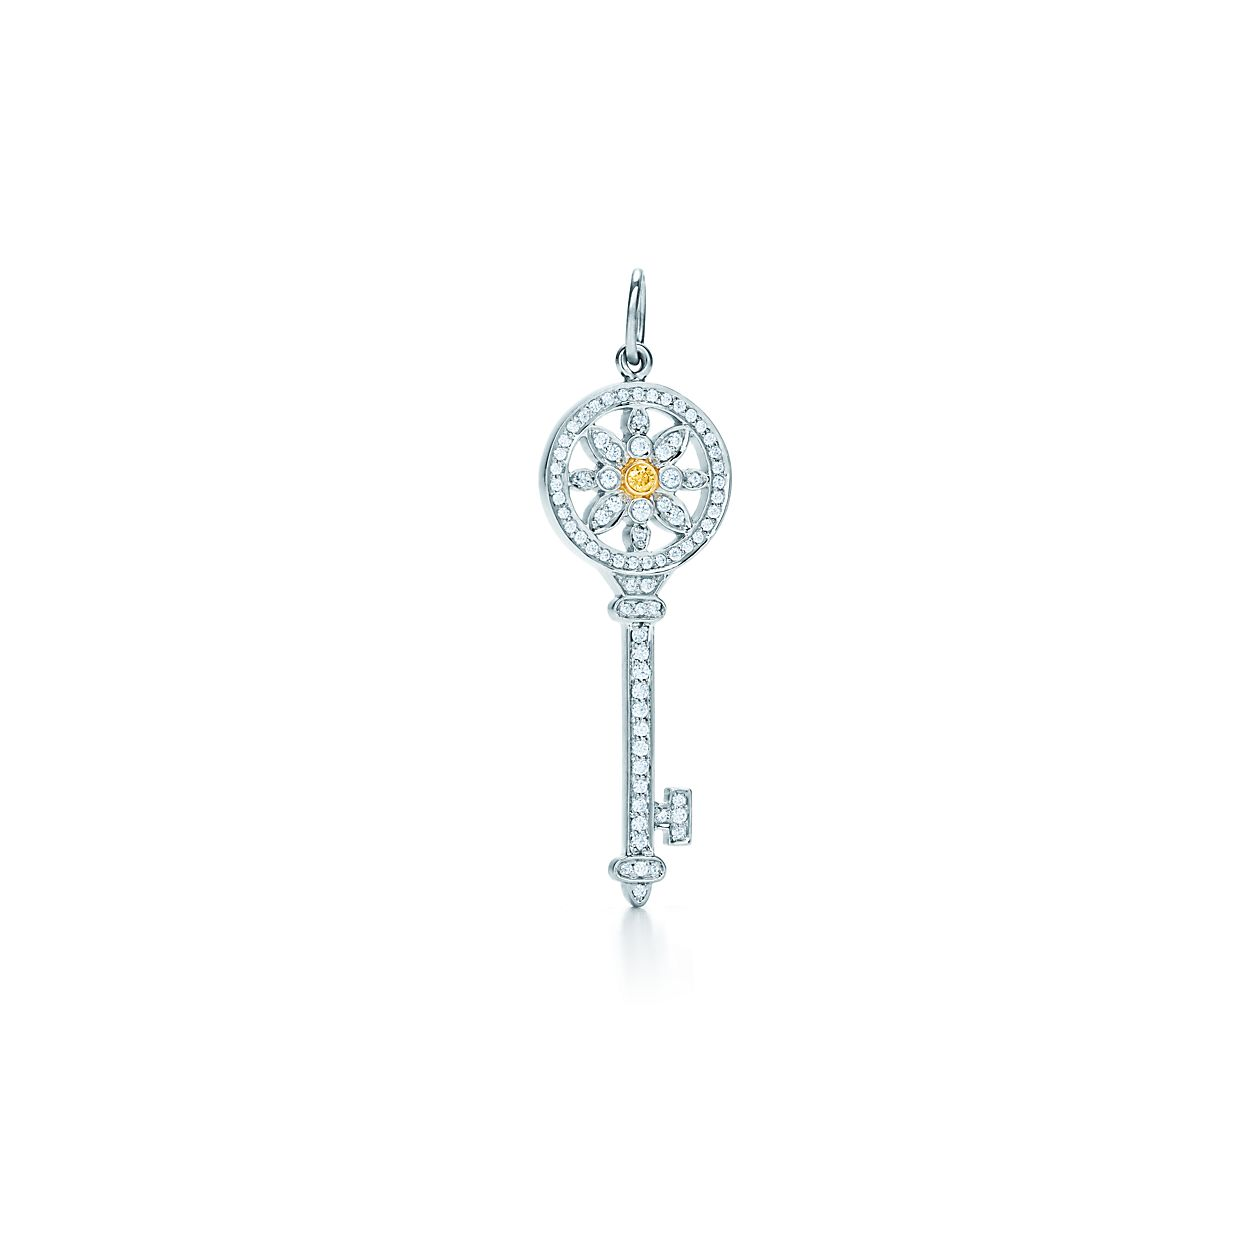 Tiffany keys daisy key pendant in platinum and 18k gold with tiffany keysdaisy key pendant tiffany keysdaisy key pendant aloadofball Gallery